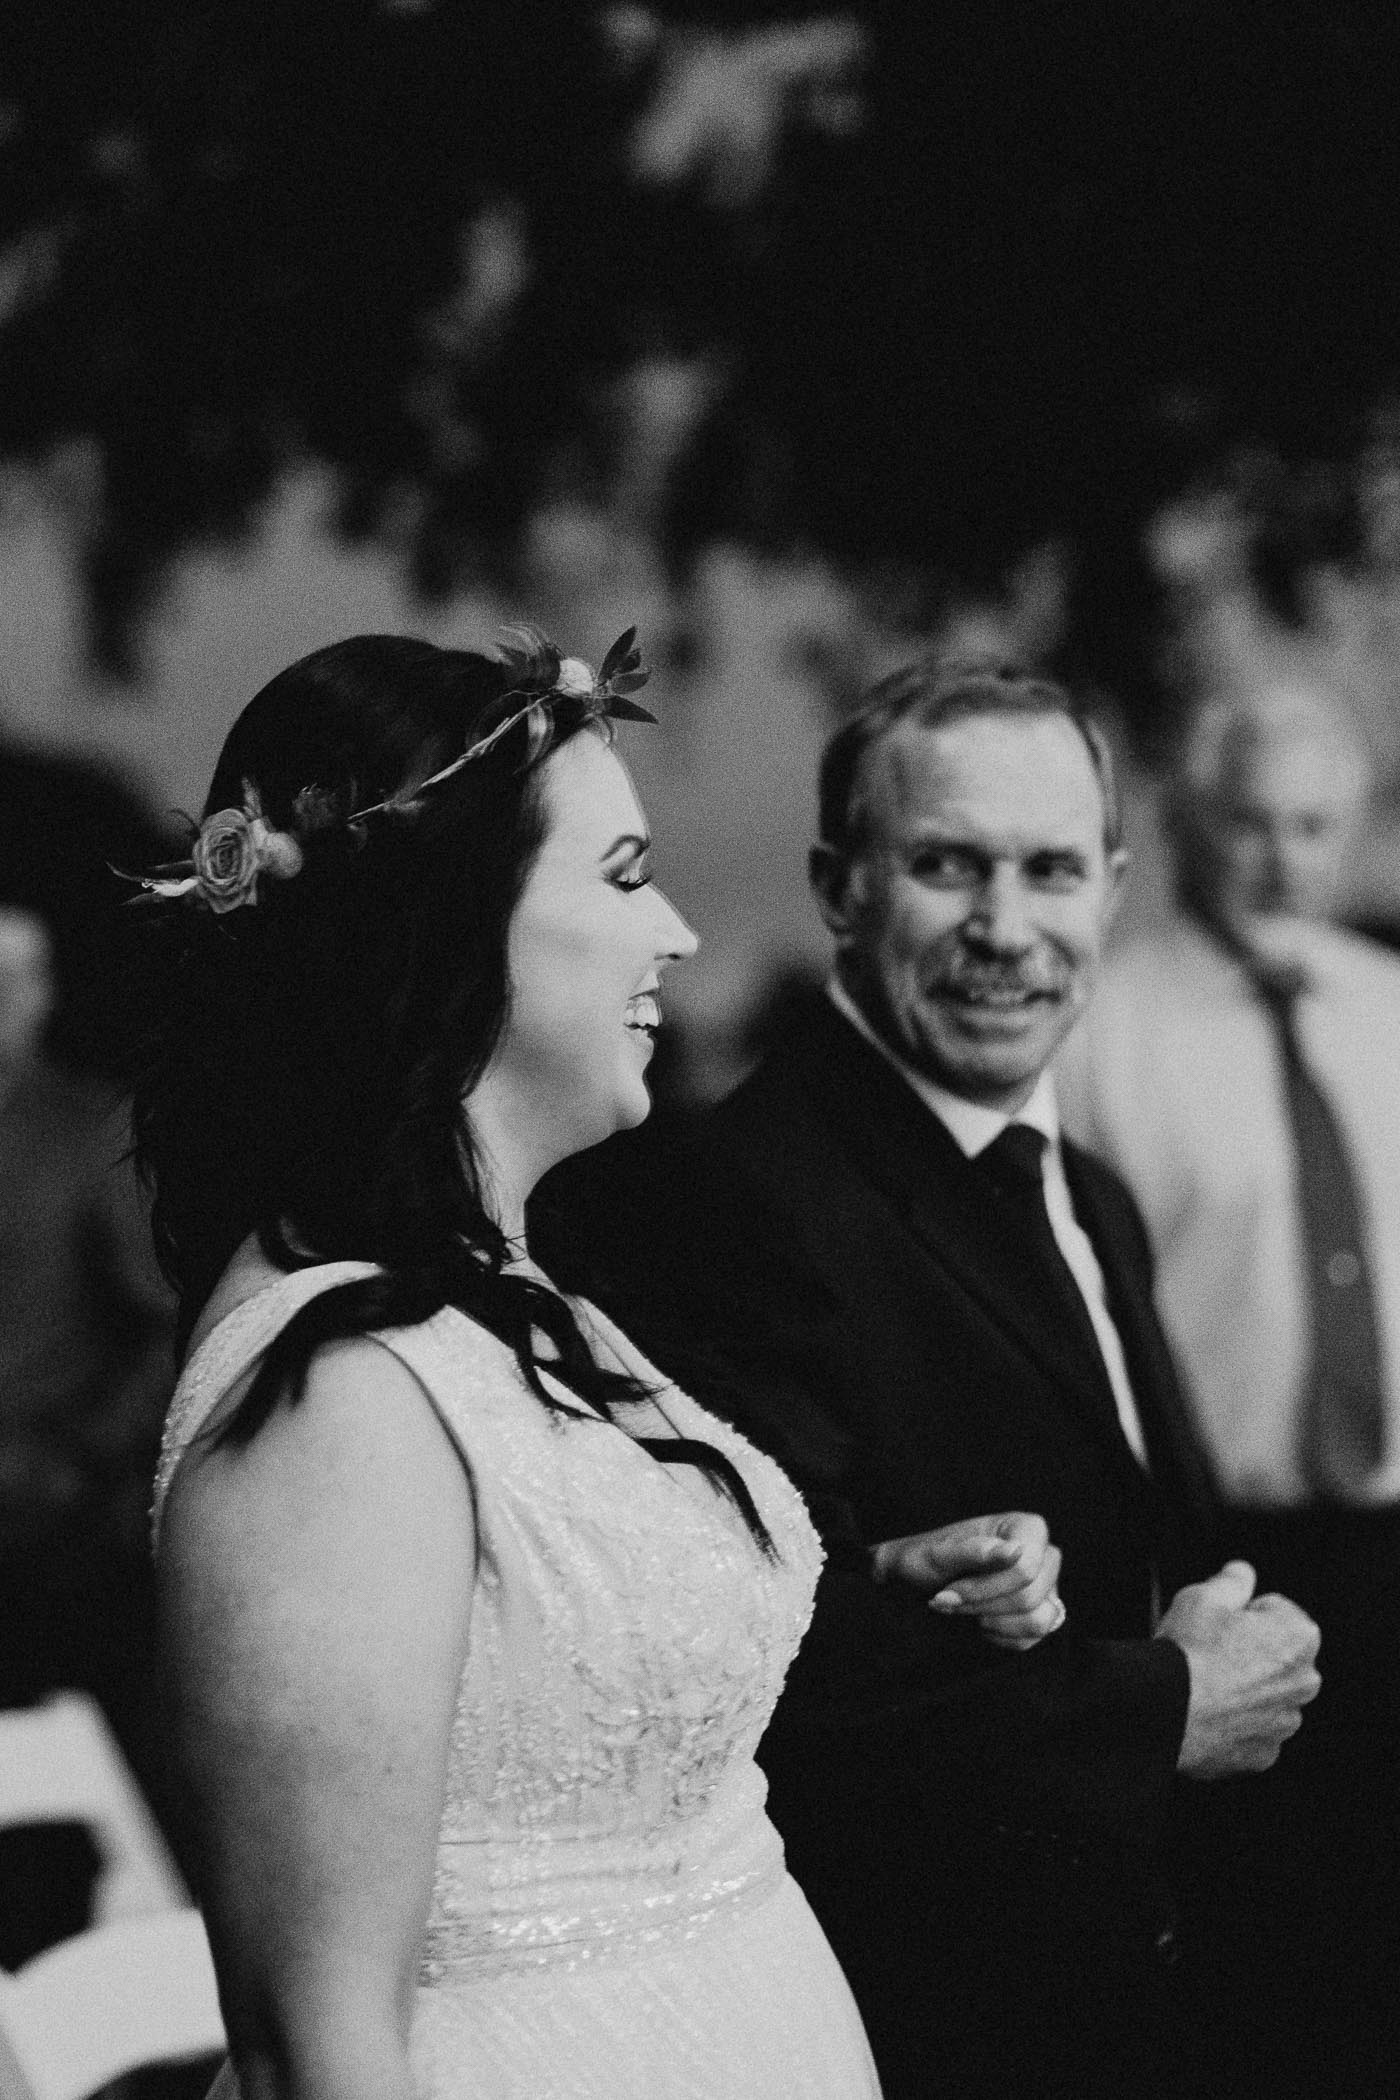 Black and white photo of dad walking bride down the aisle on her wedding day